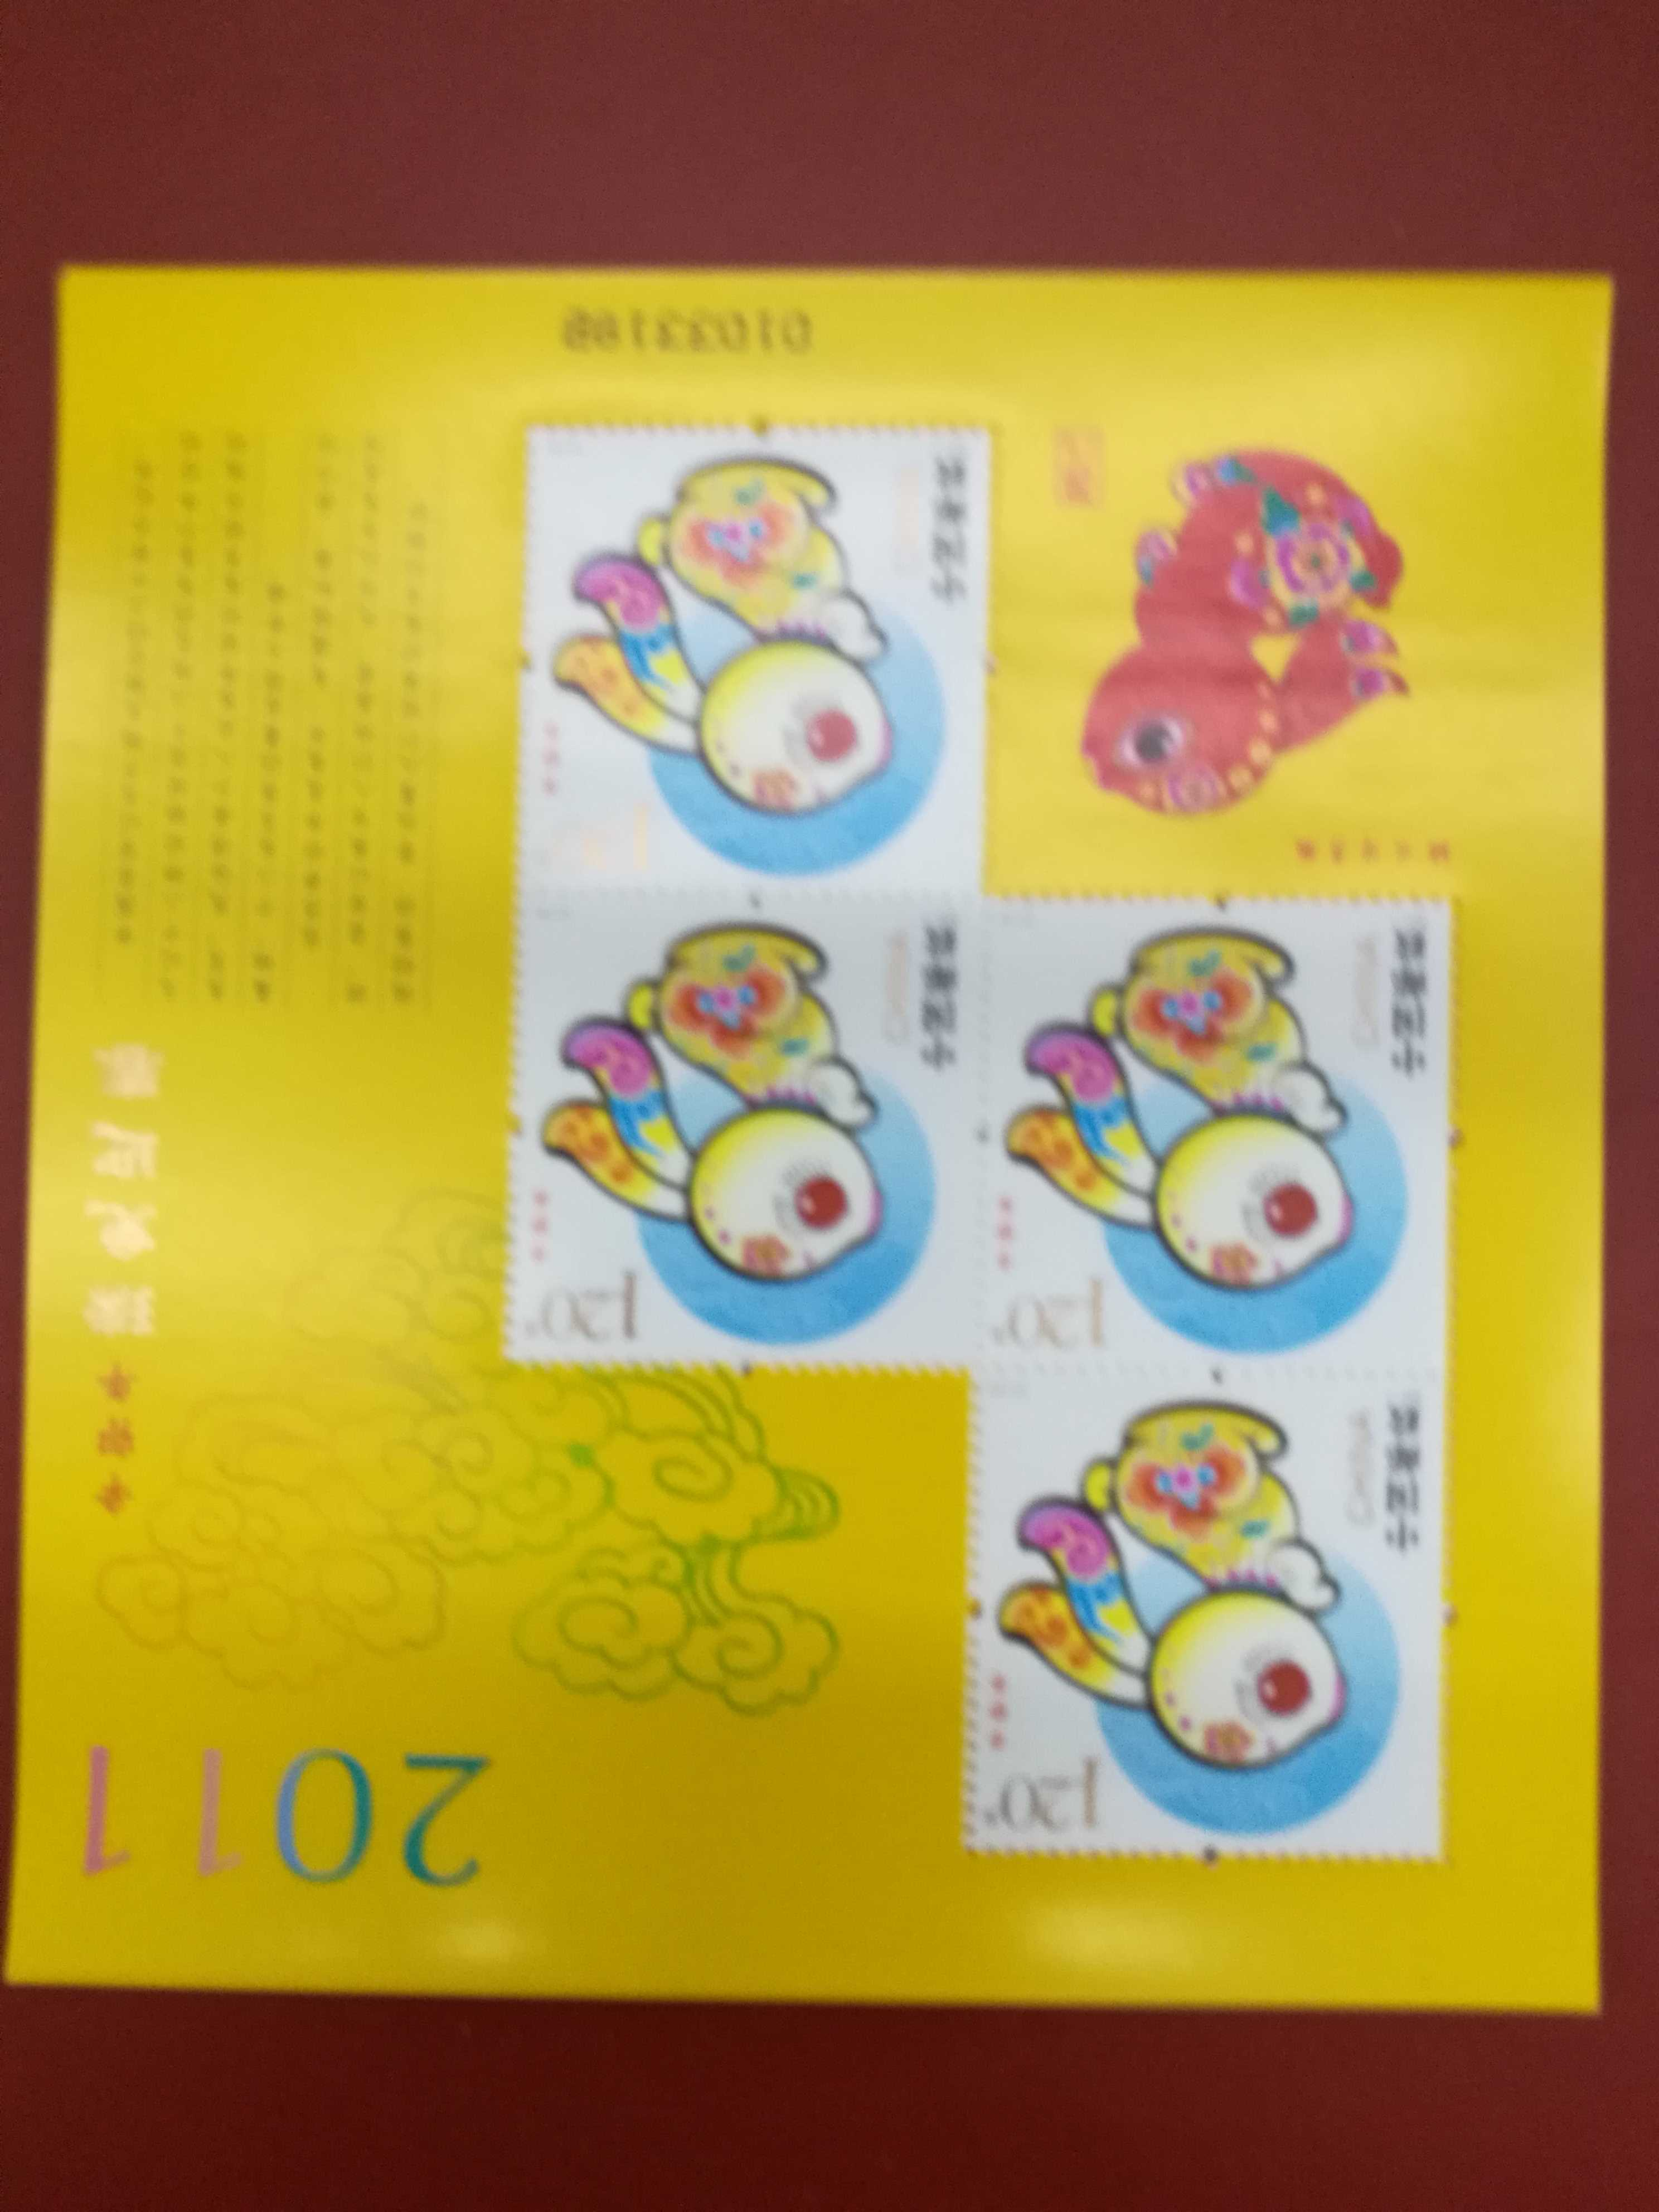 2011-11 three rounds of Chinese Zodiac rabbit free edition three rounds of yellow rabbit stamp original glue complete product, post office authentic product